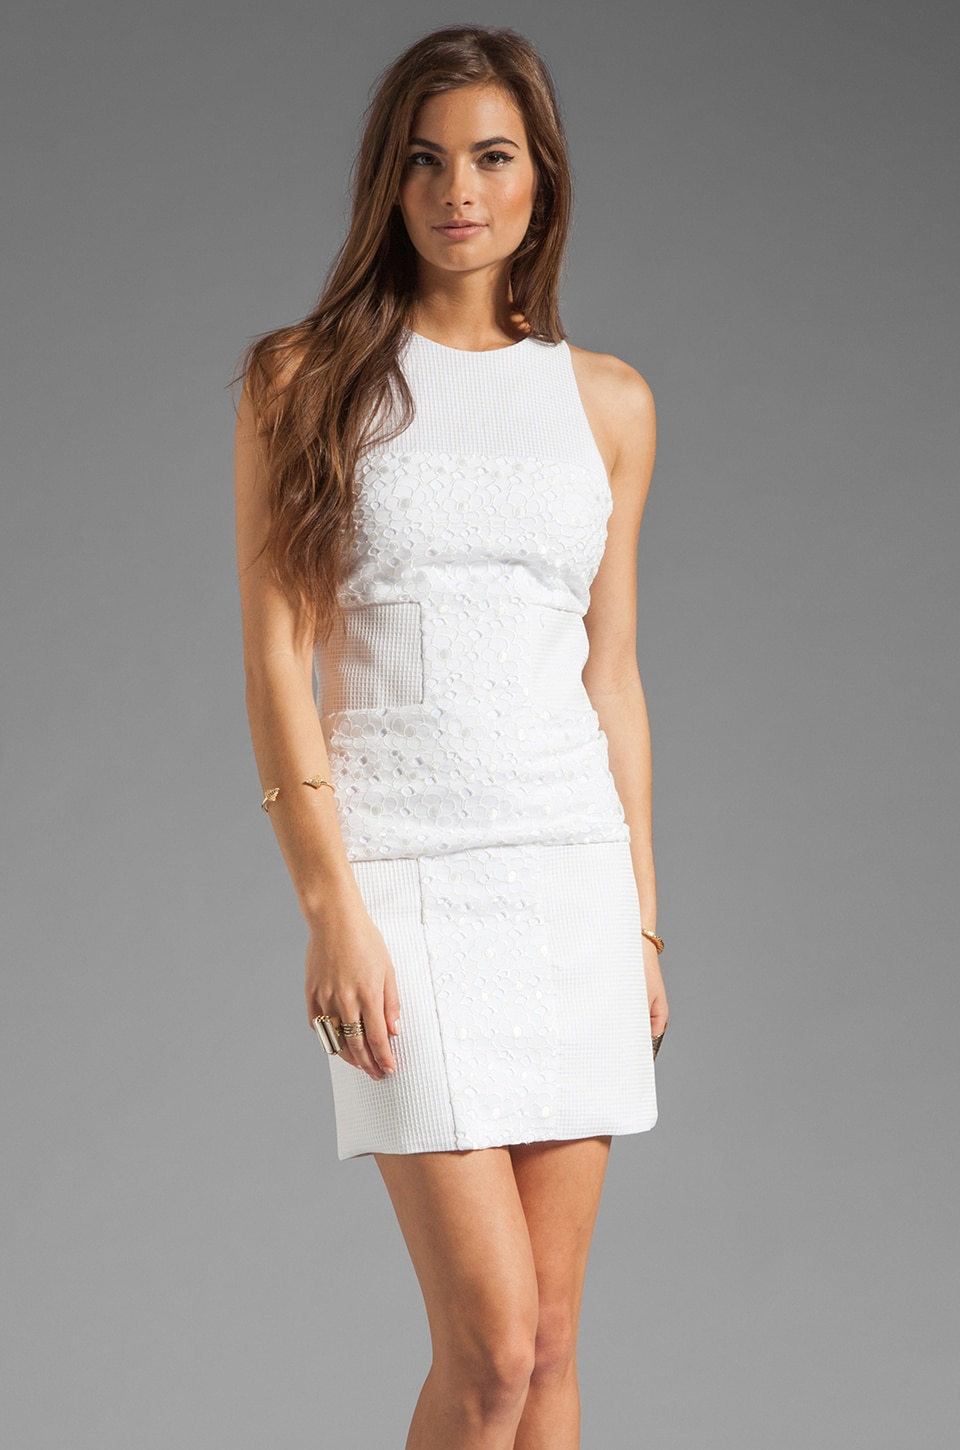 BEC&BRIDGE Renegade Cross Dress in White